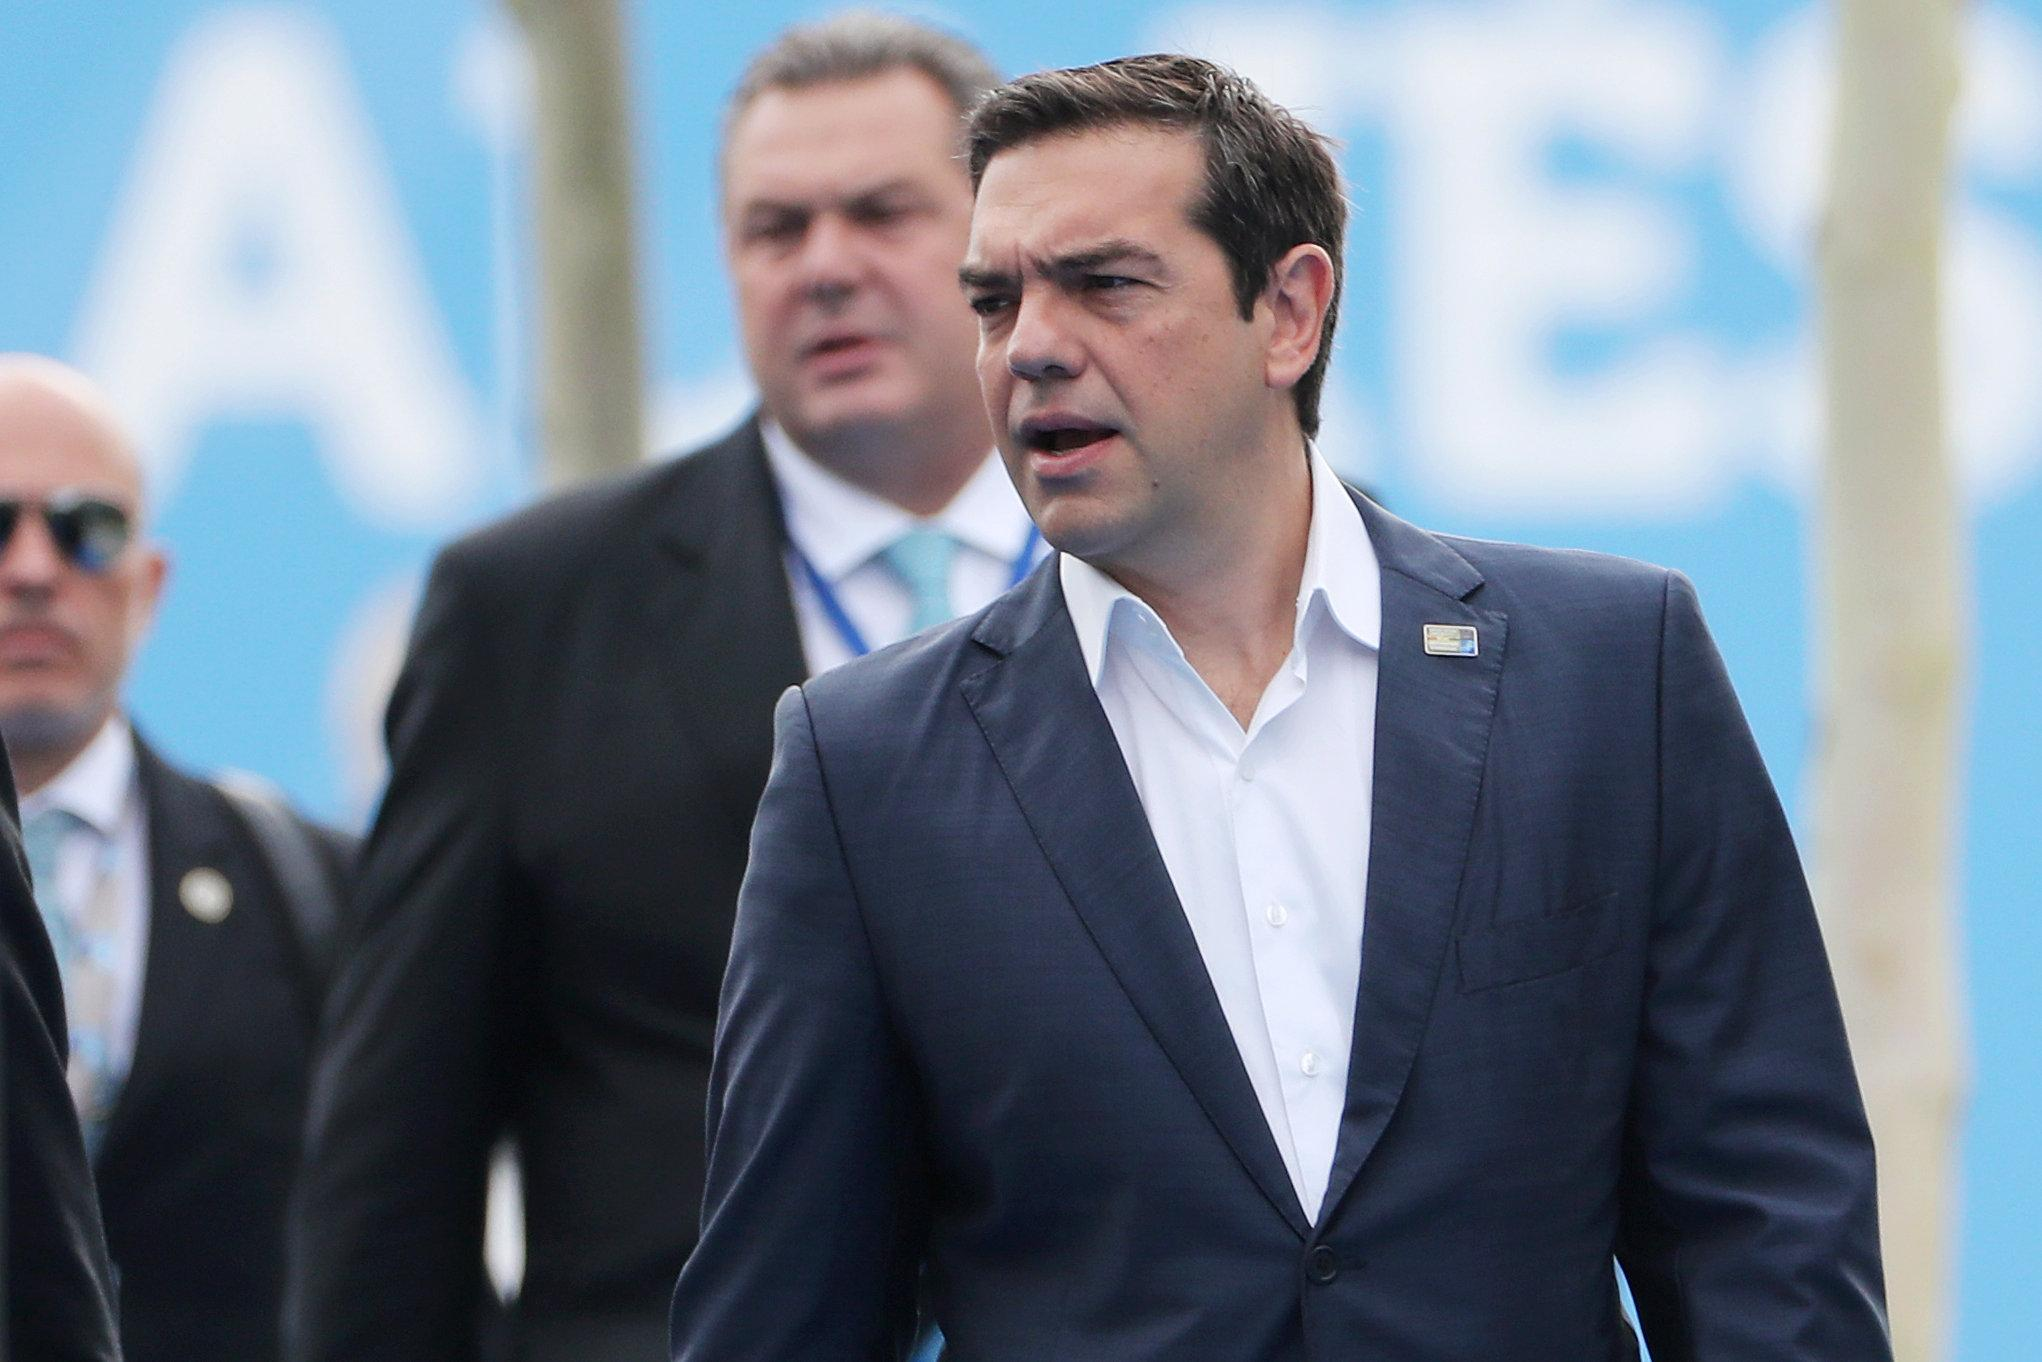 Greek Prime Minister Alexis Tsipras arrives for the second day of a NATO summit in Brussels, Belgium, July 12, 2018. Tatyana Zenkovich/Pool via